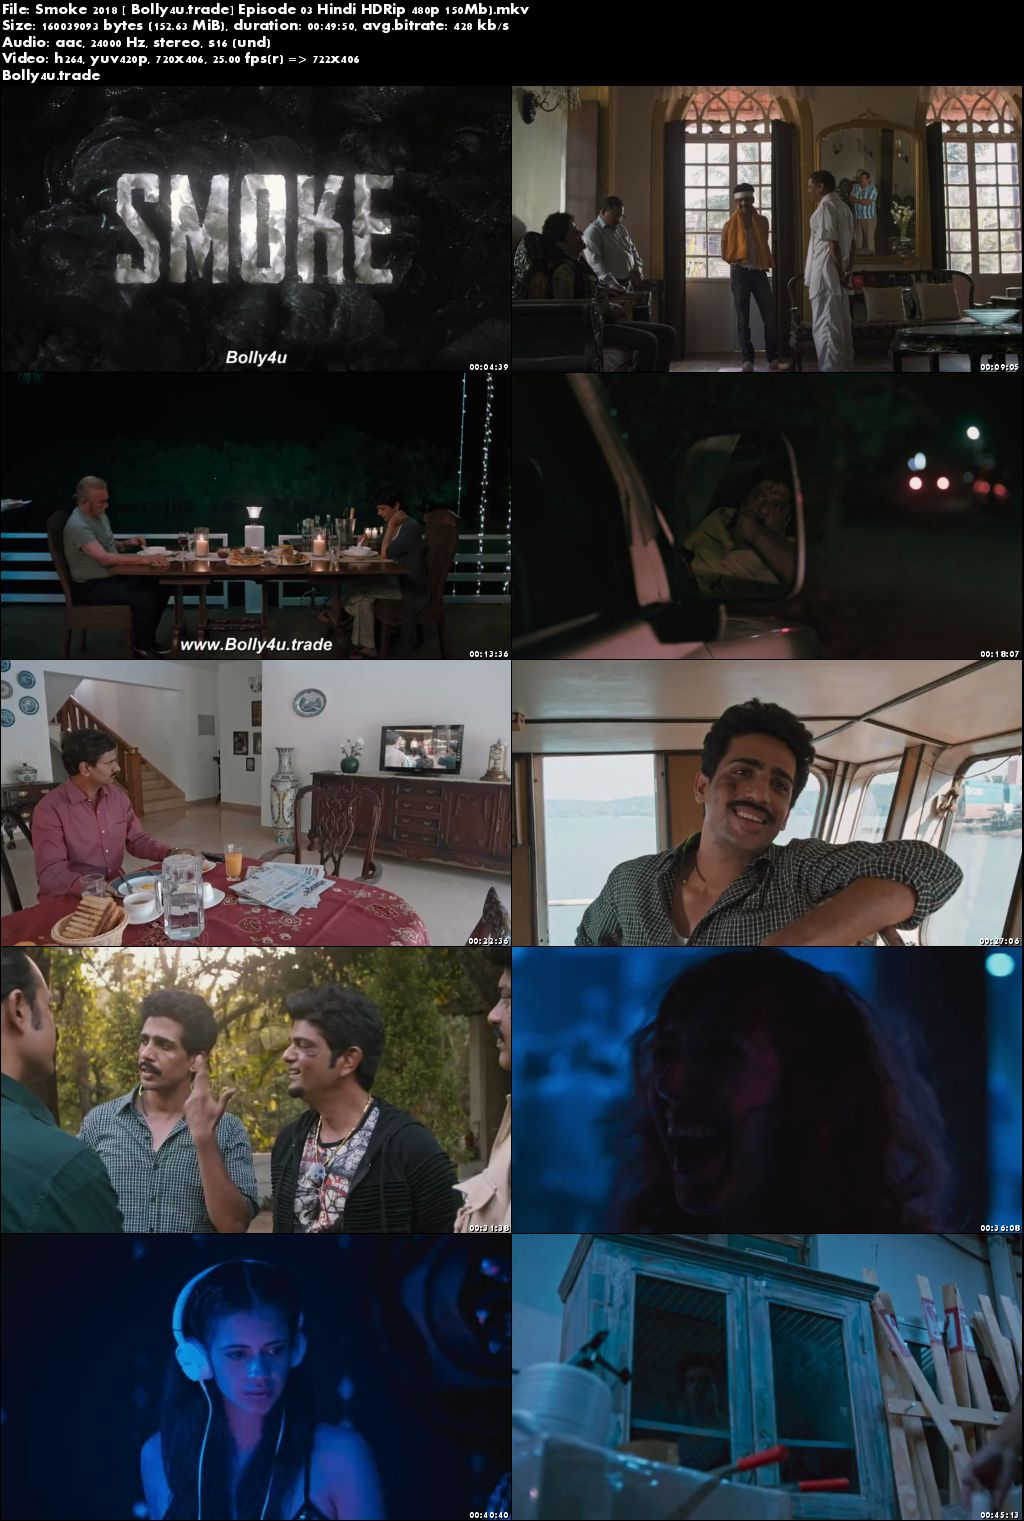 Smoke 2018 HDRip 150MB Episode 03 Hindi 480p Download